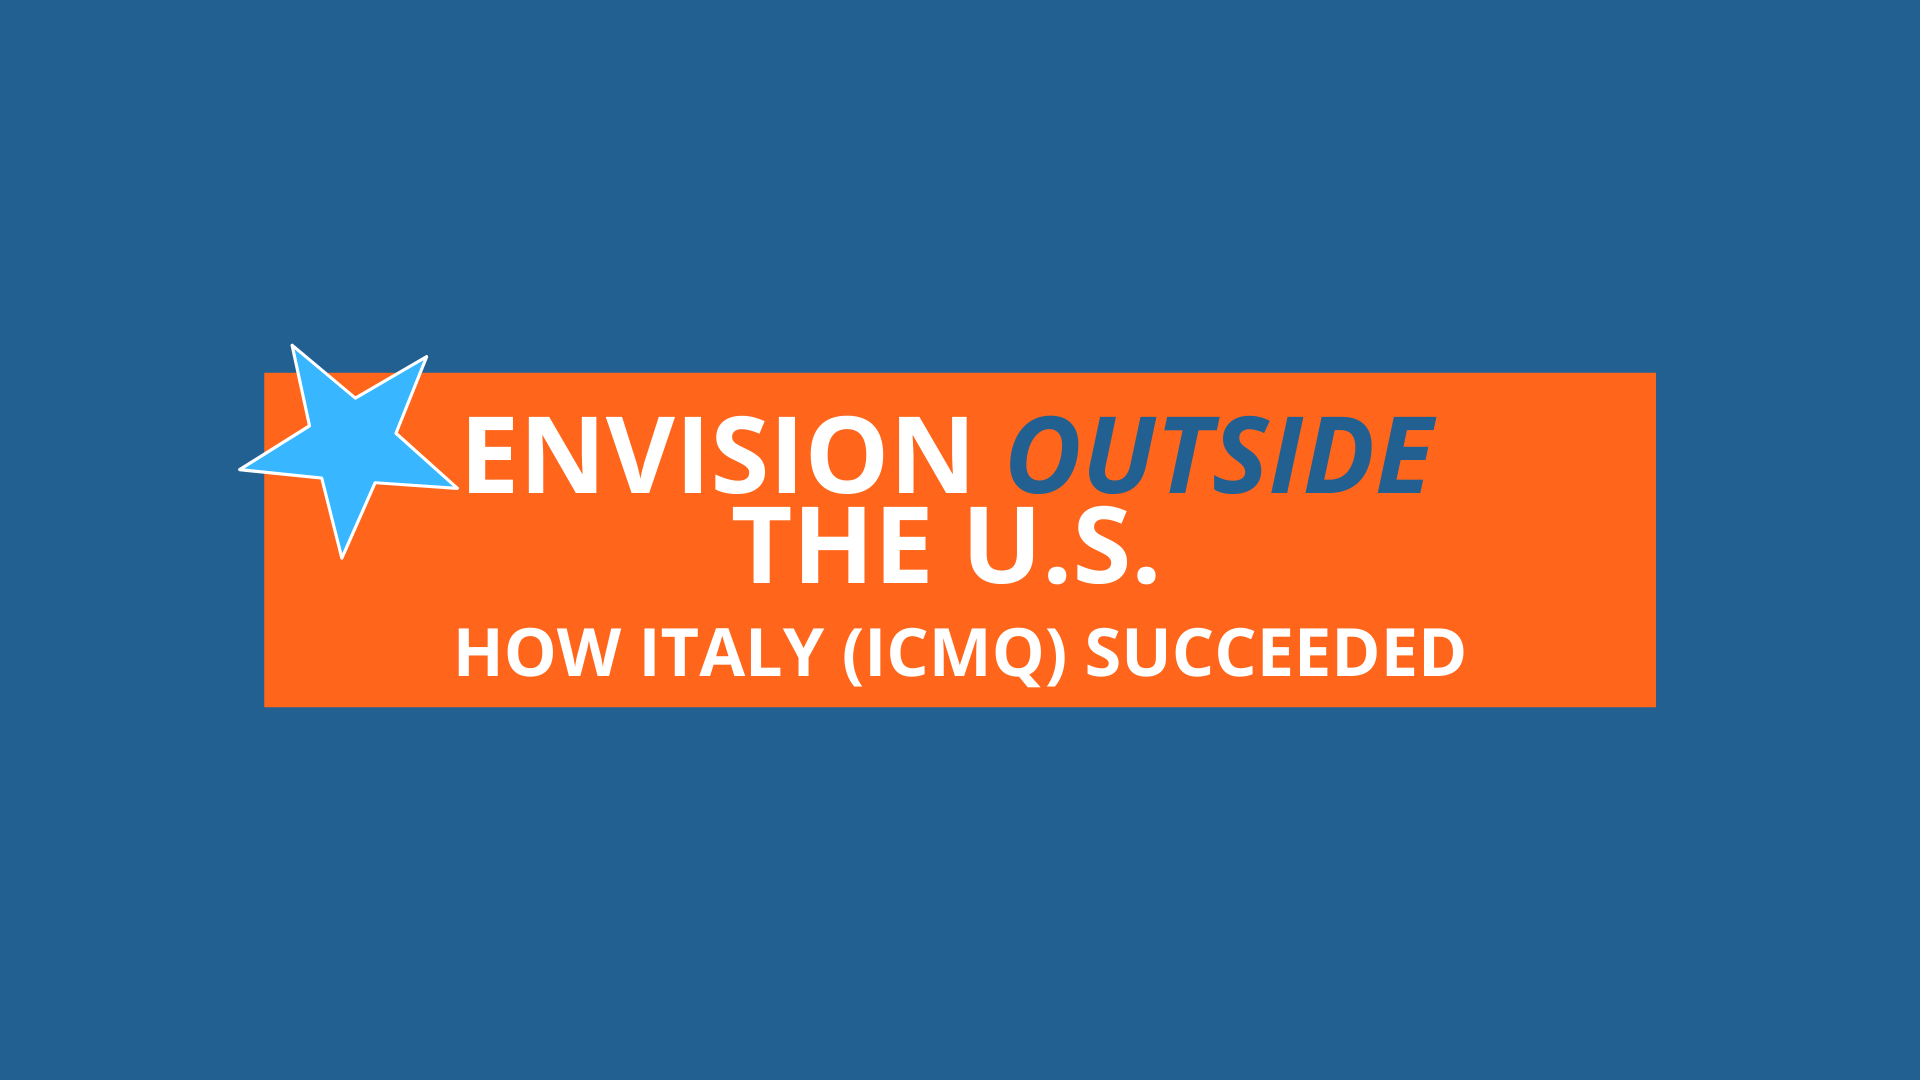 Envision Outside the USA (How ICMQ implemented Envision successfully)